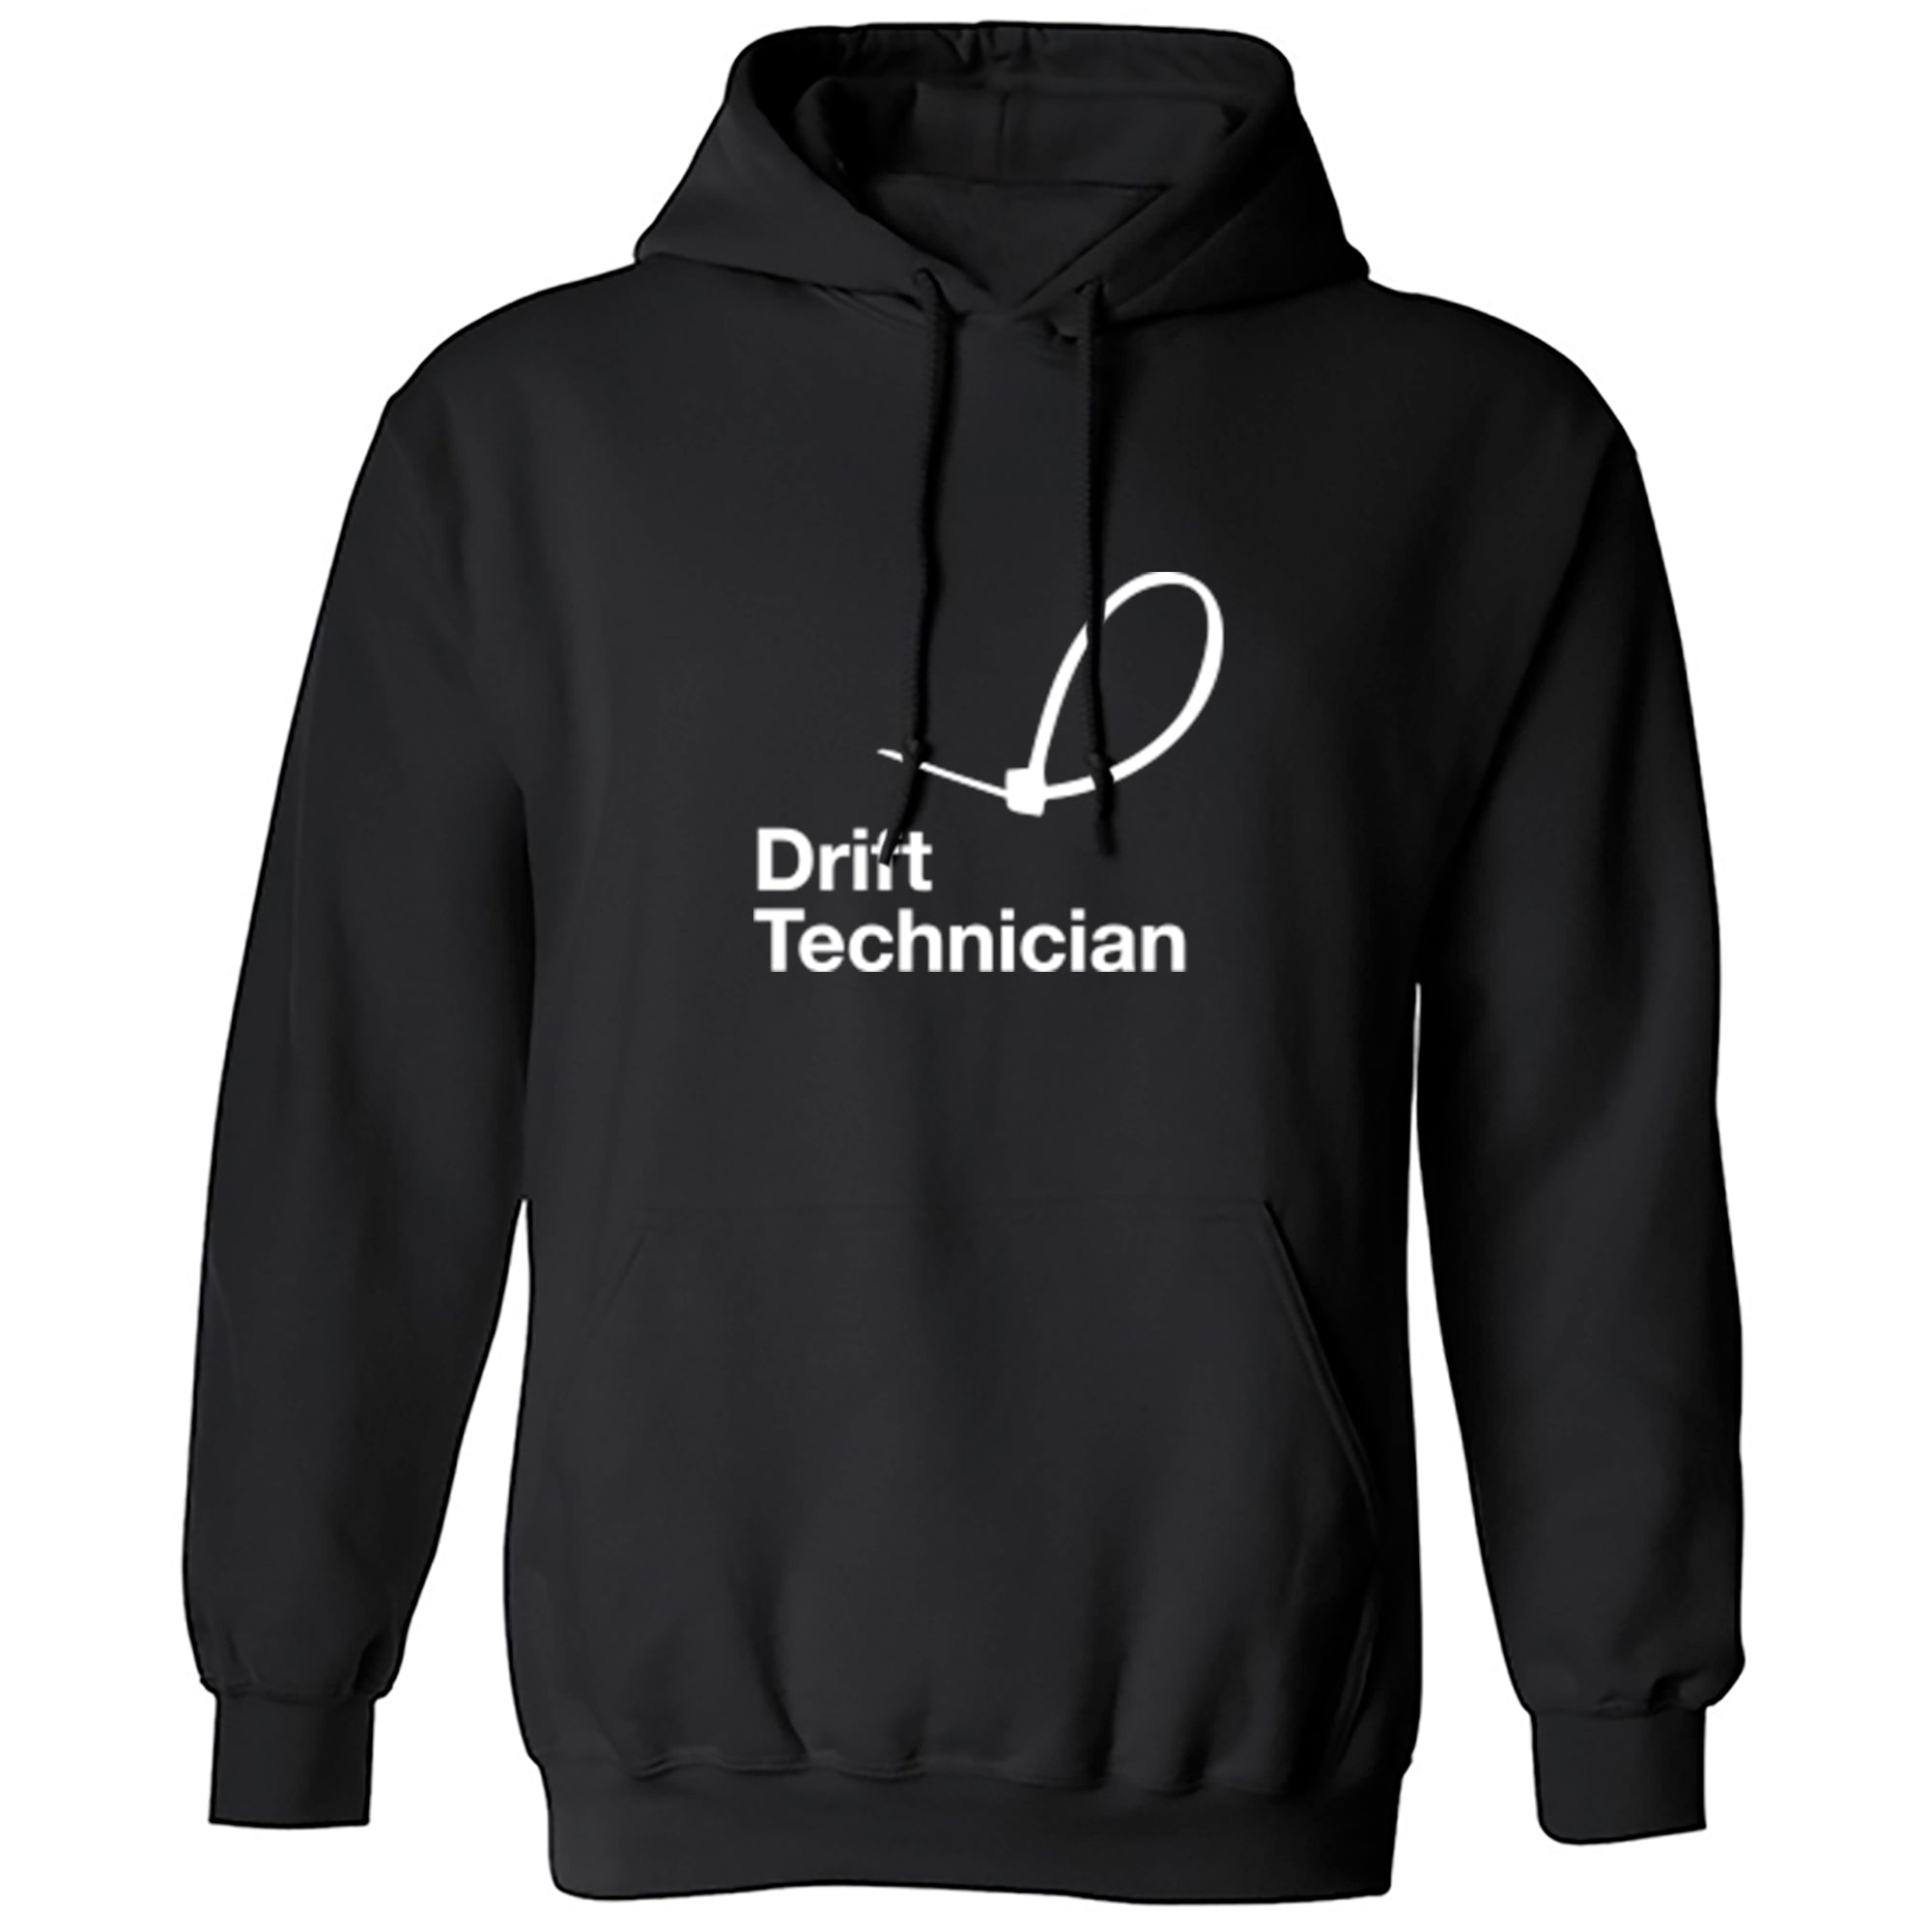 Drift Technician Unisex Hoodie A0077 - Illustrated Identity Ltd.